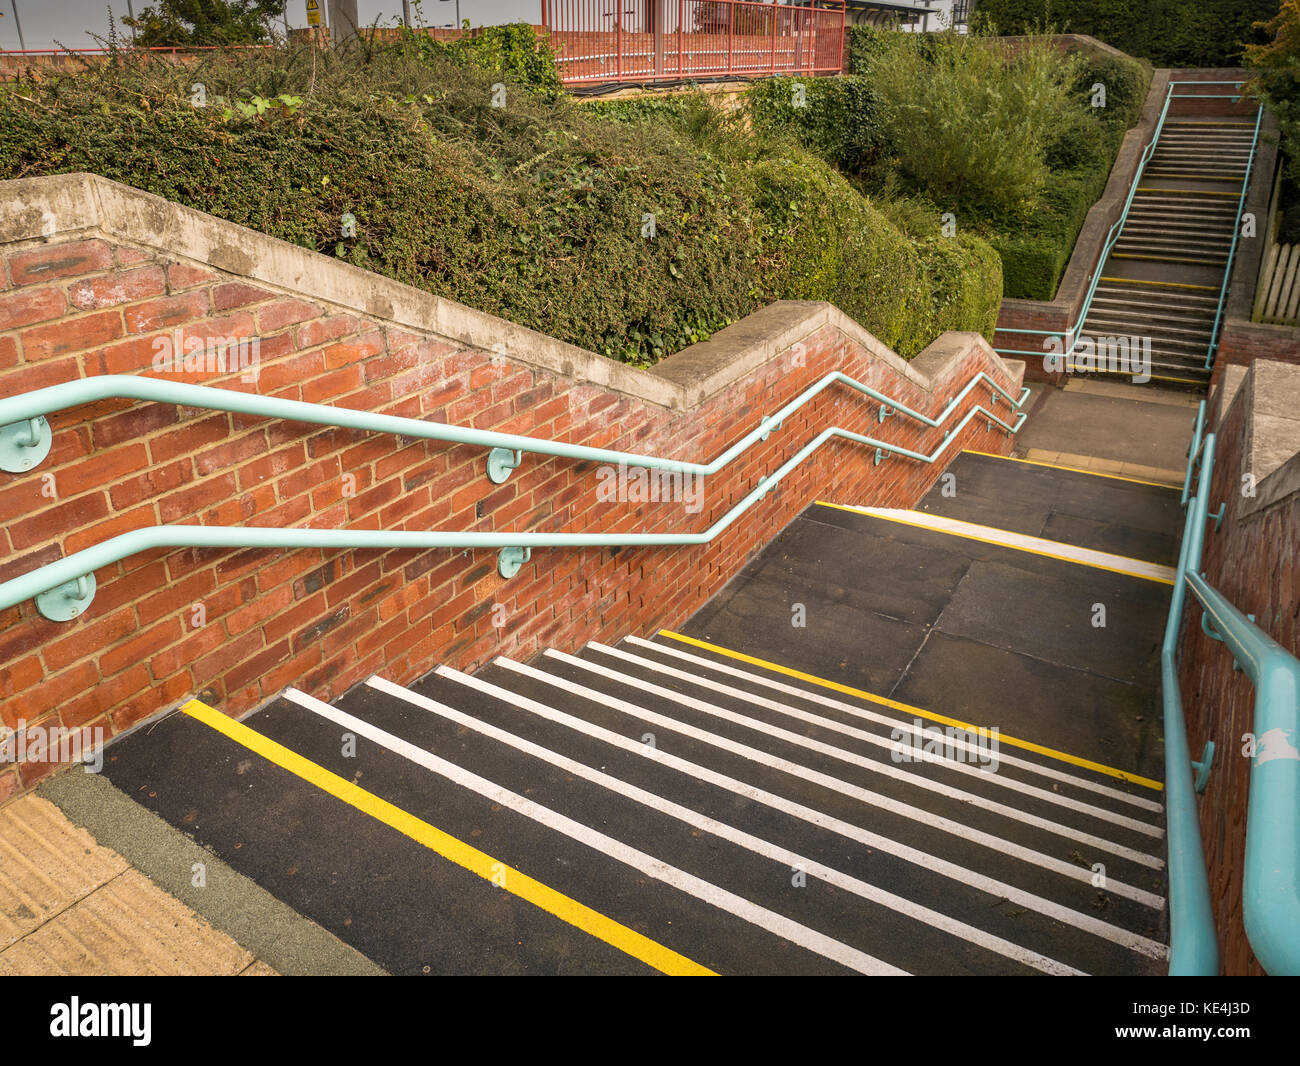 Staircase and underpass of  the Tyne and Wear metro at East Boldon, England. - Stock Image